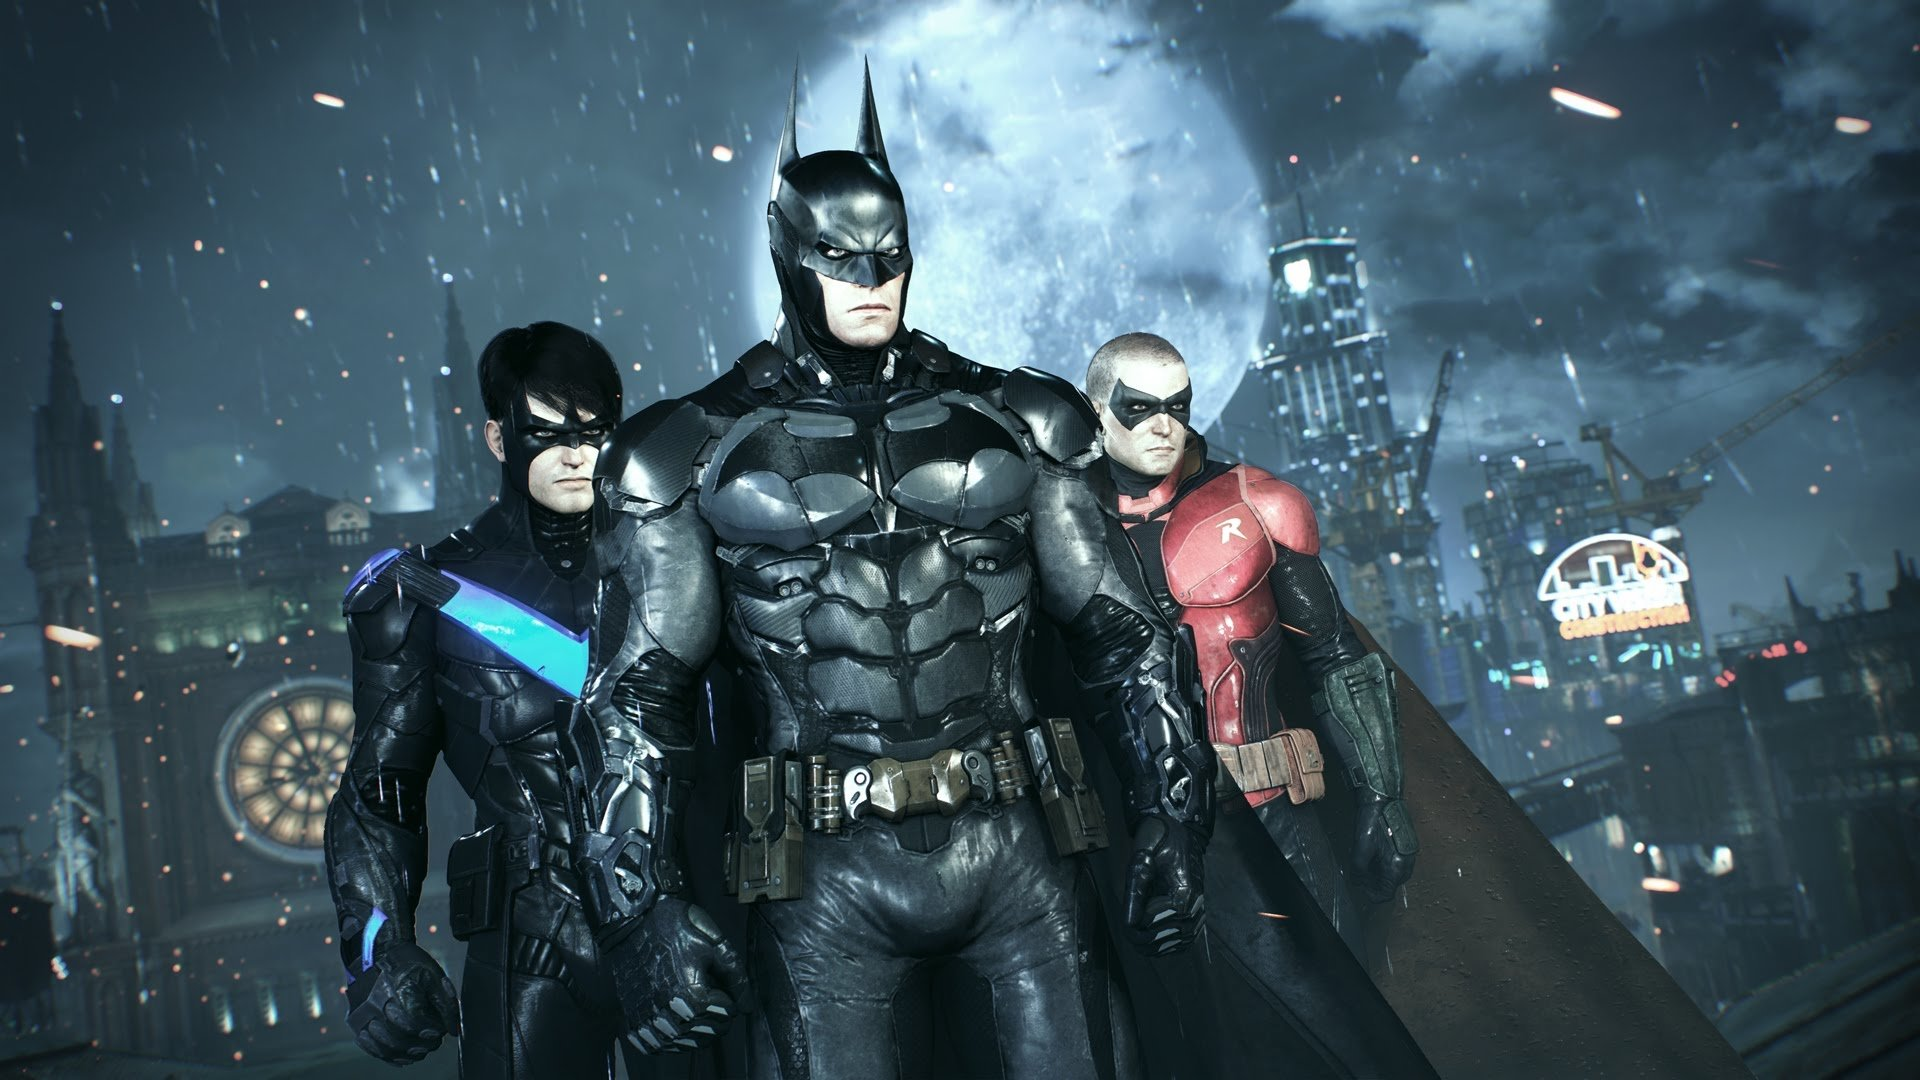 Batman, Robin and Nightwing, ready for battle